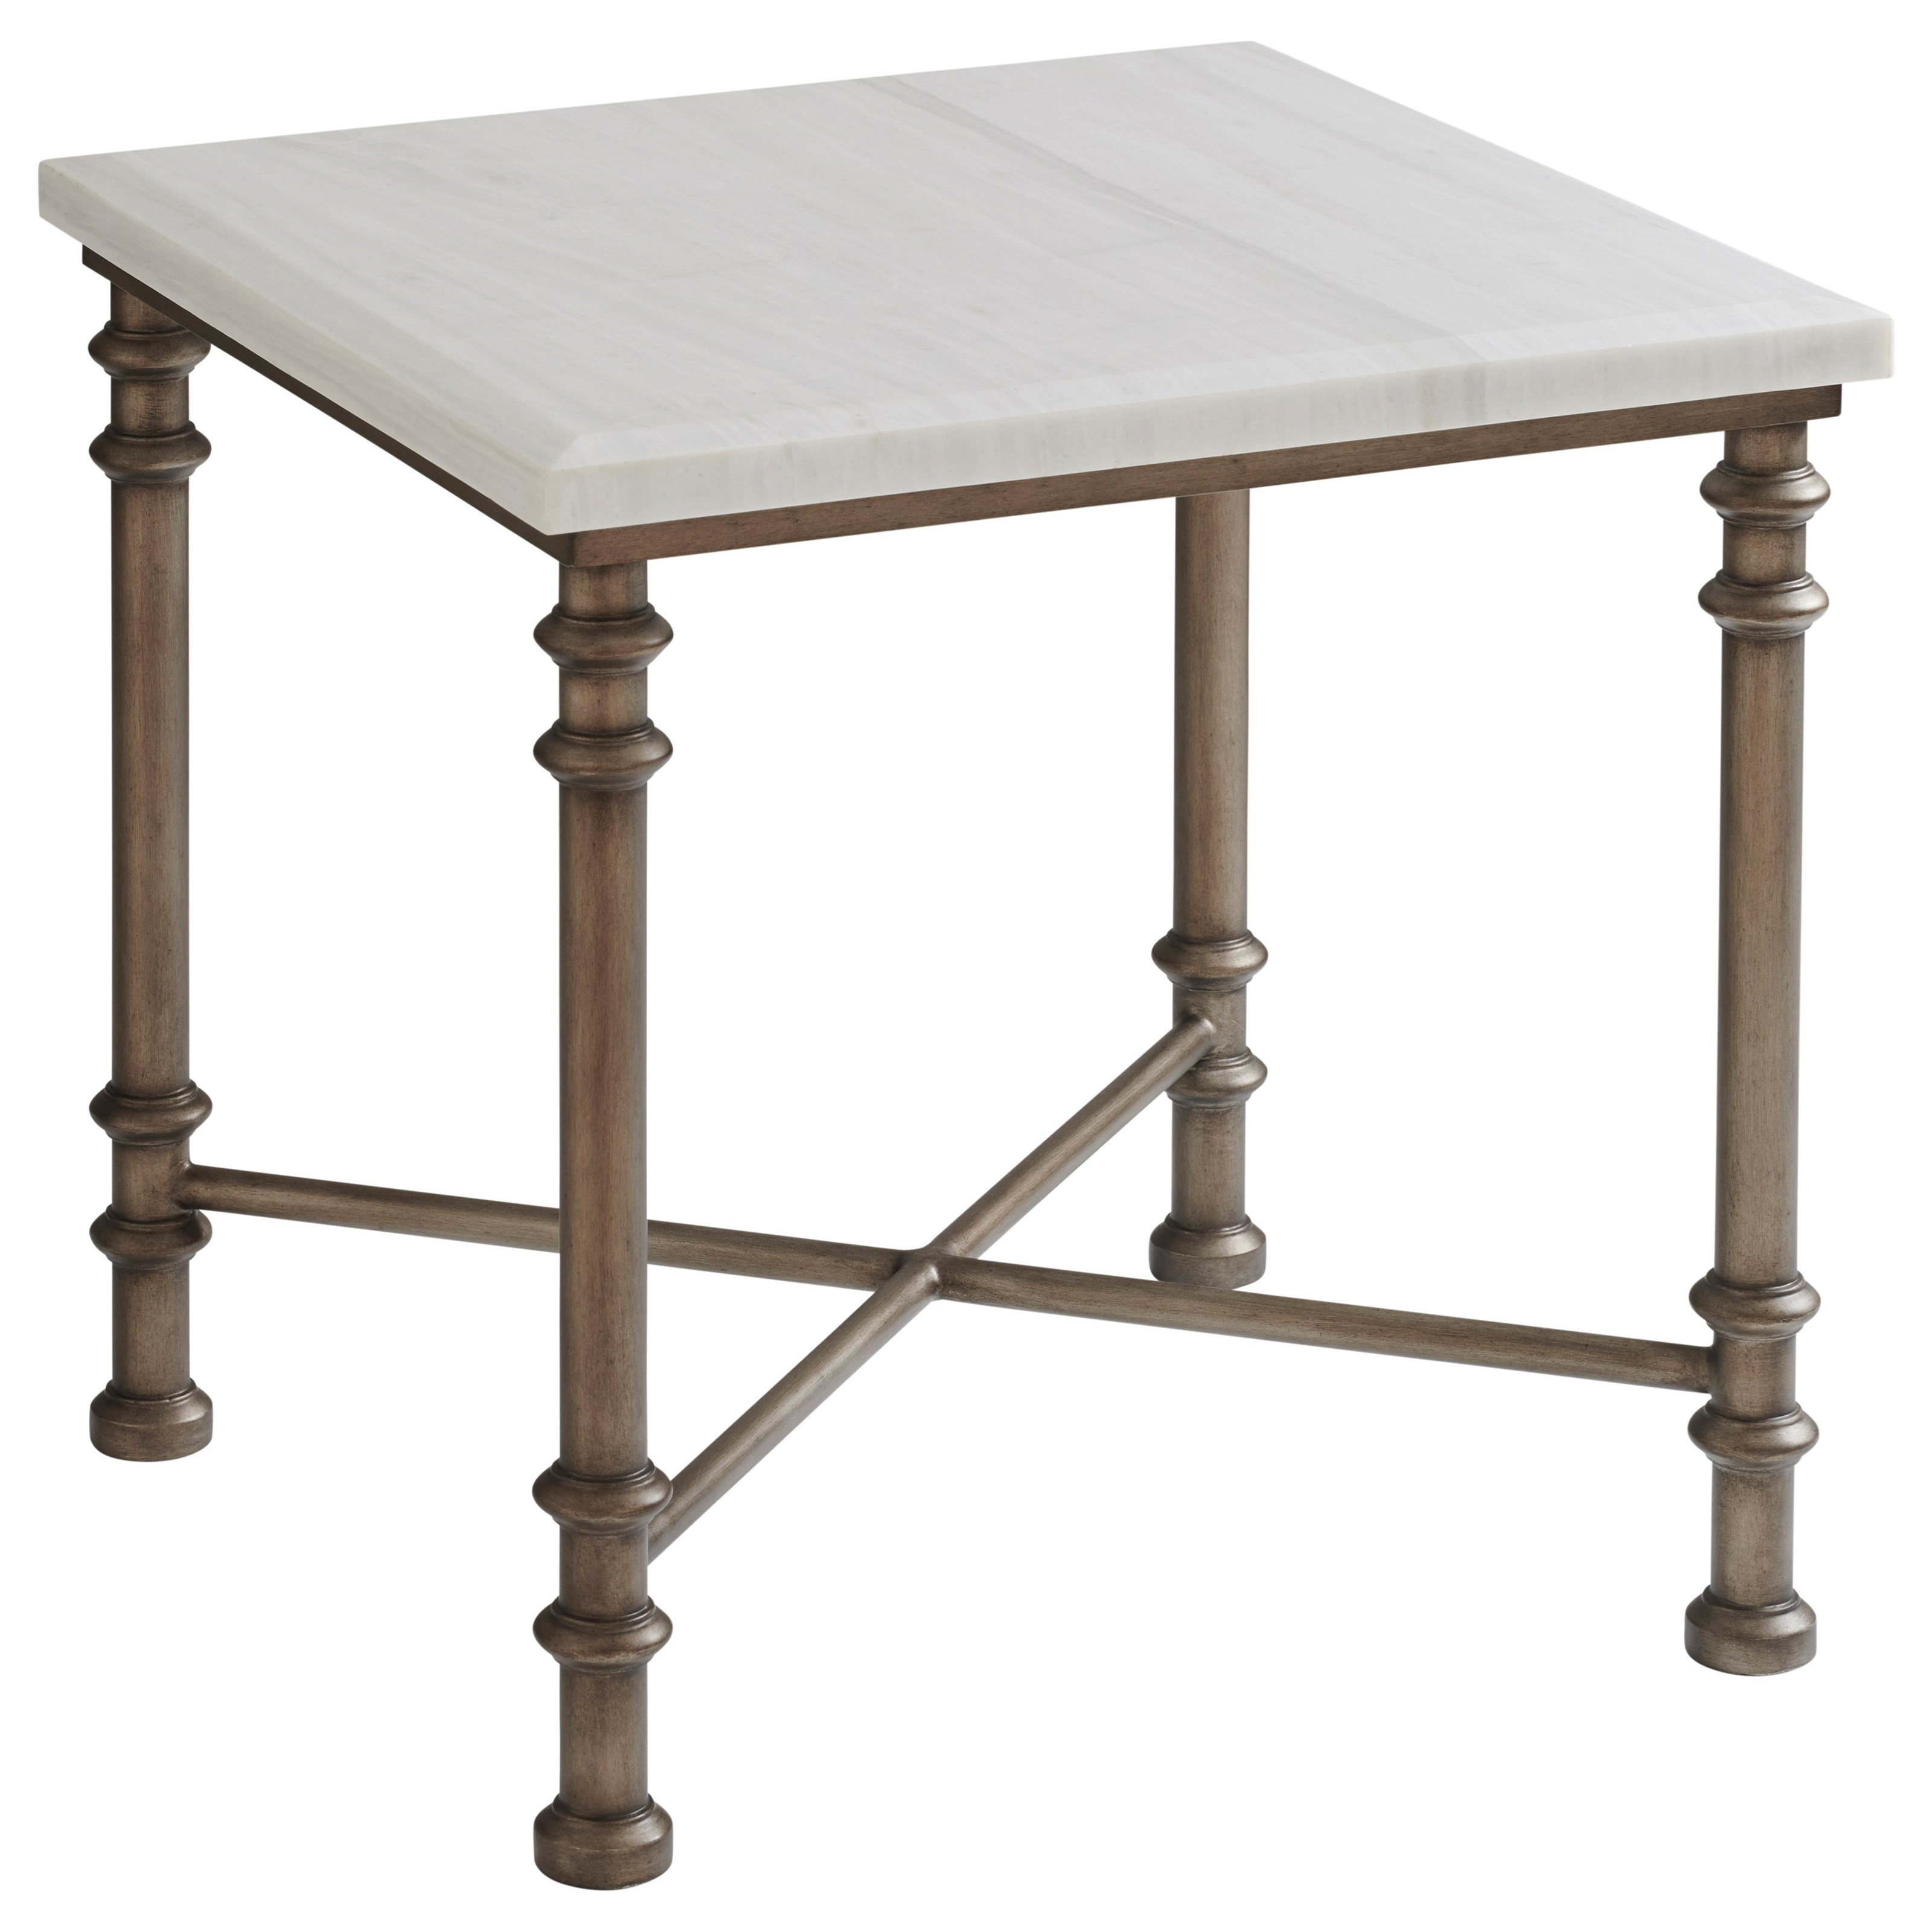 Ocean Breeze Flagler Square Marble Top End Table by Tommy Bahama Home at Baer's Furniture